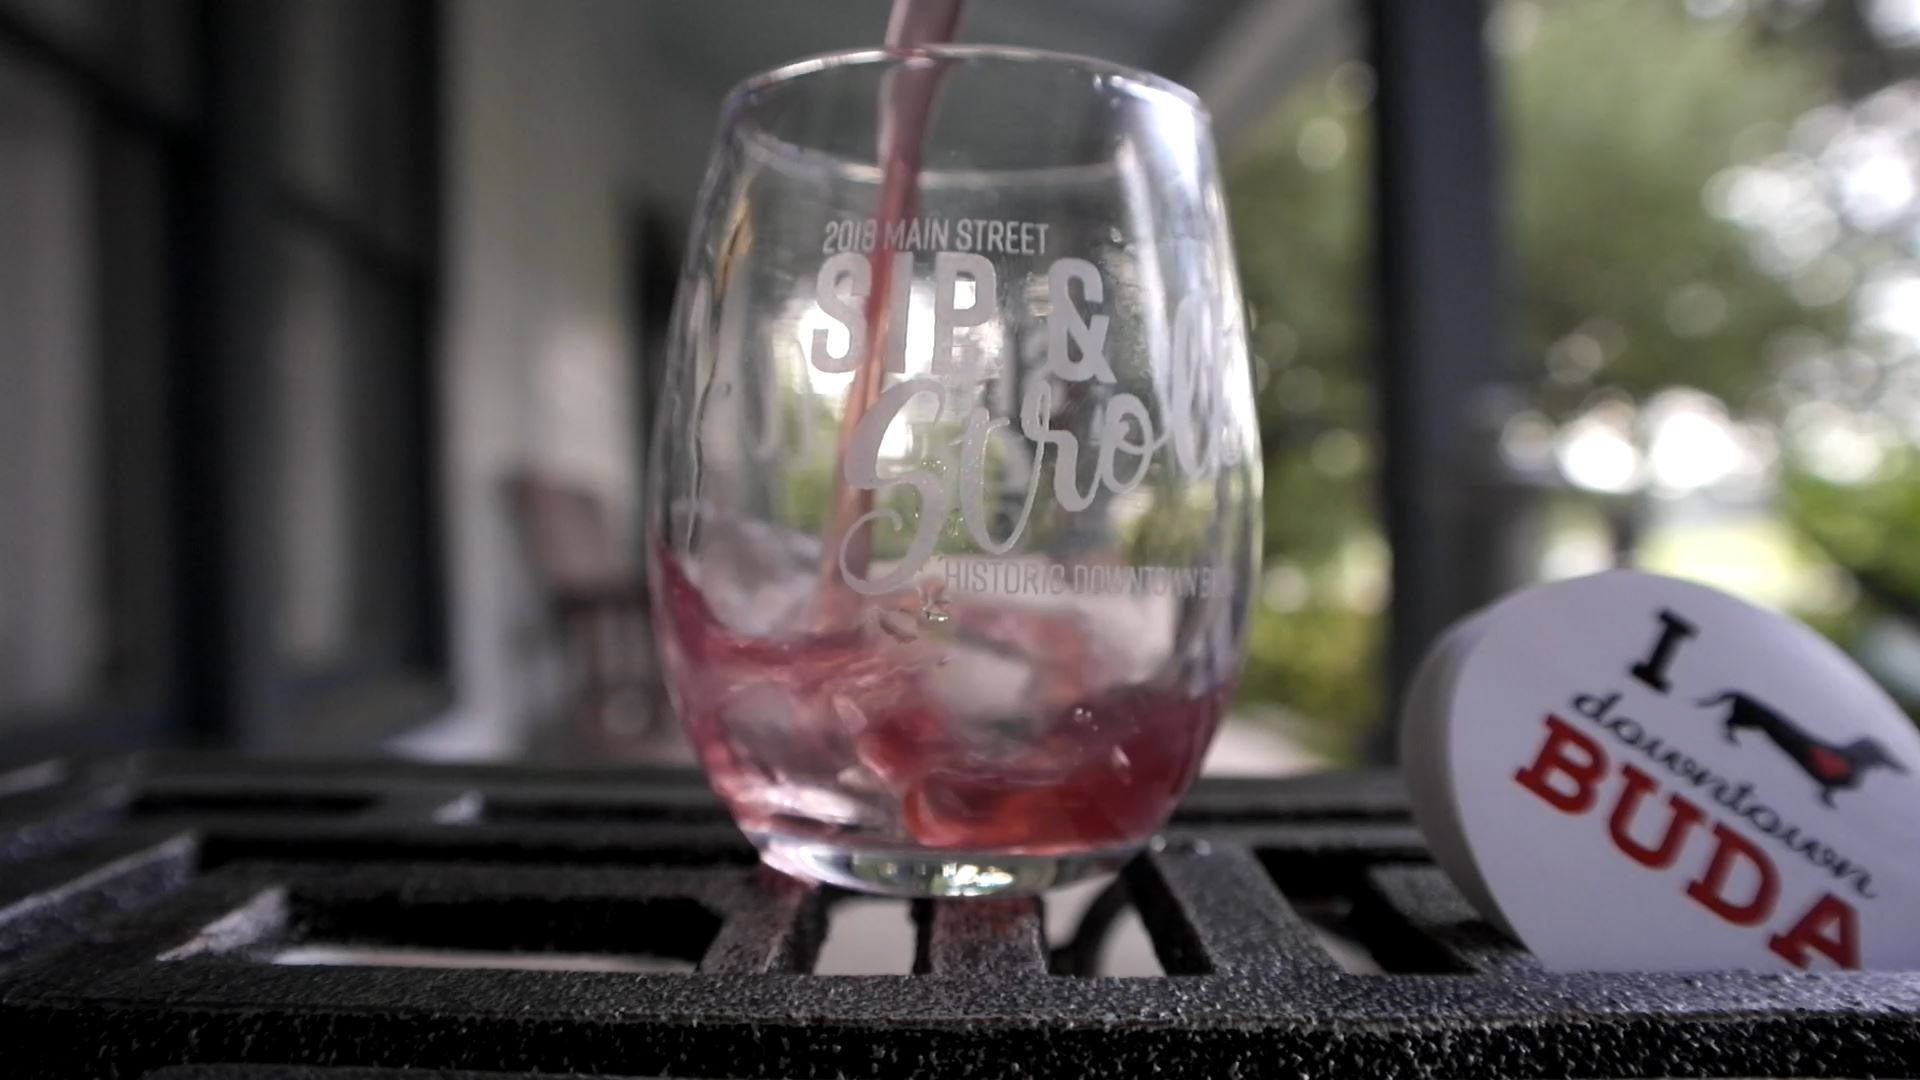 Wine being poured into glass from the Buda Sip and Stroll